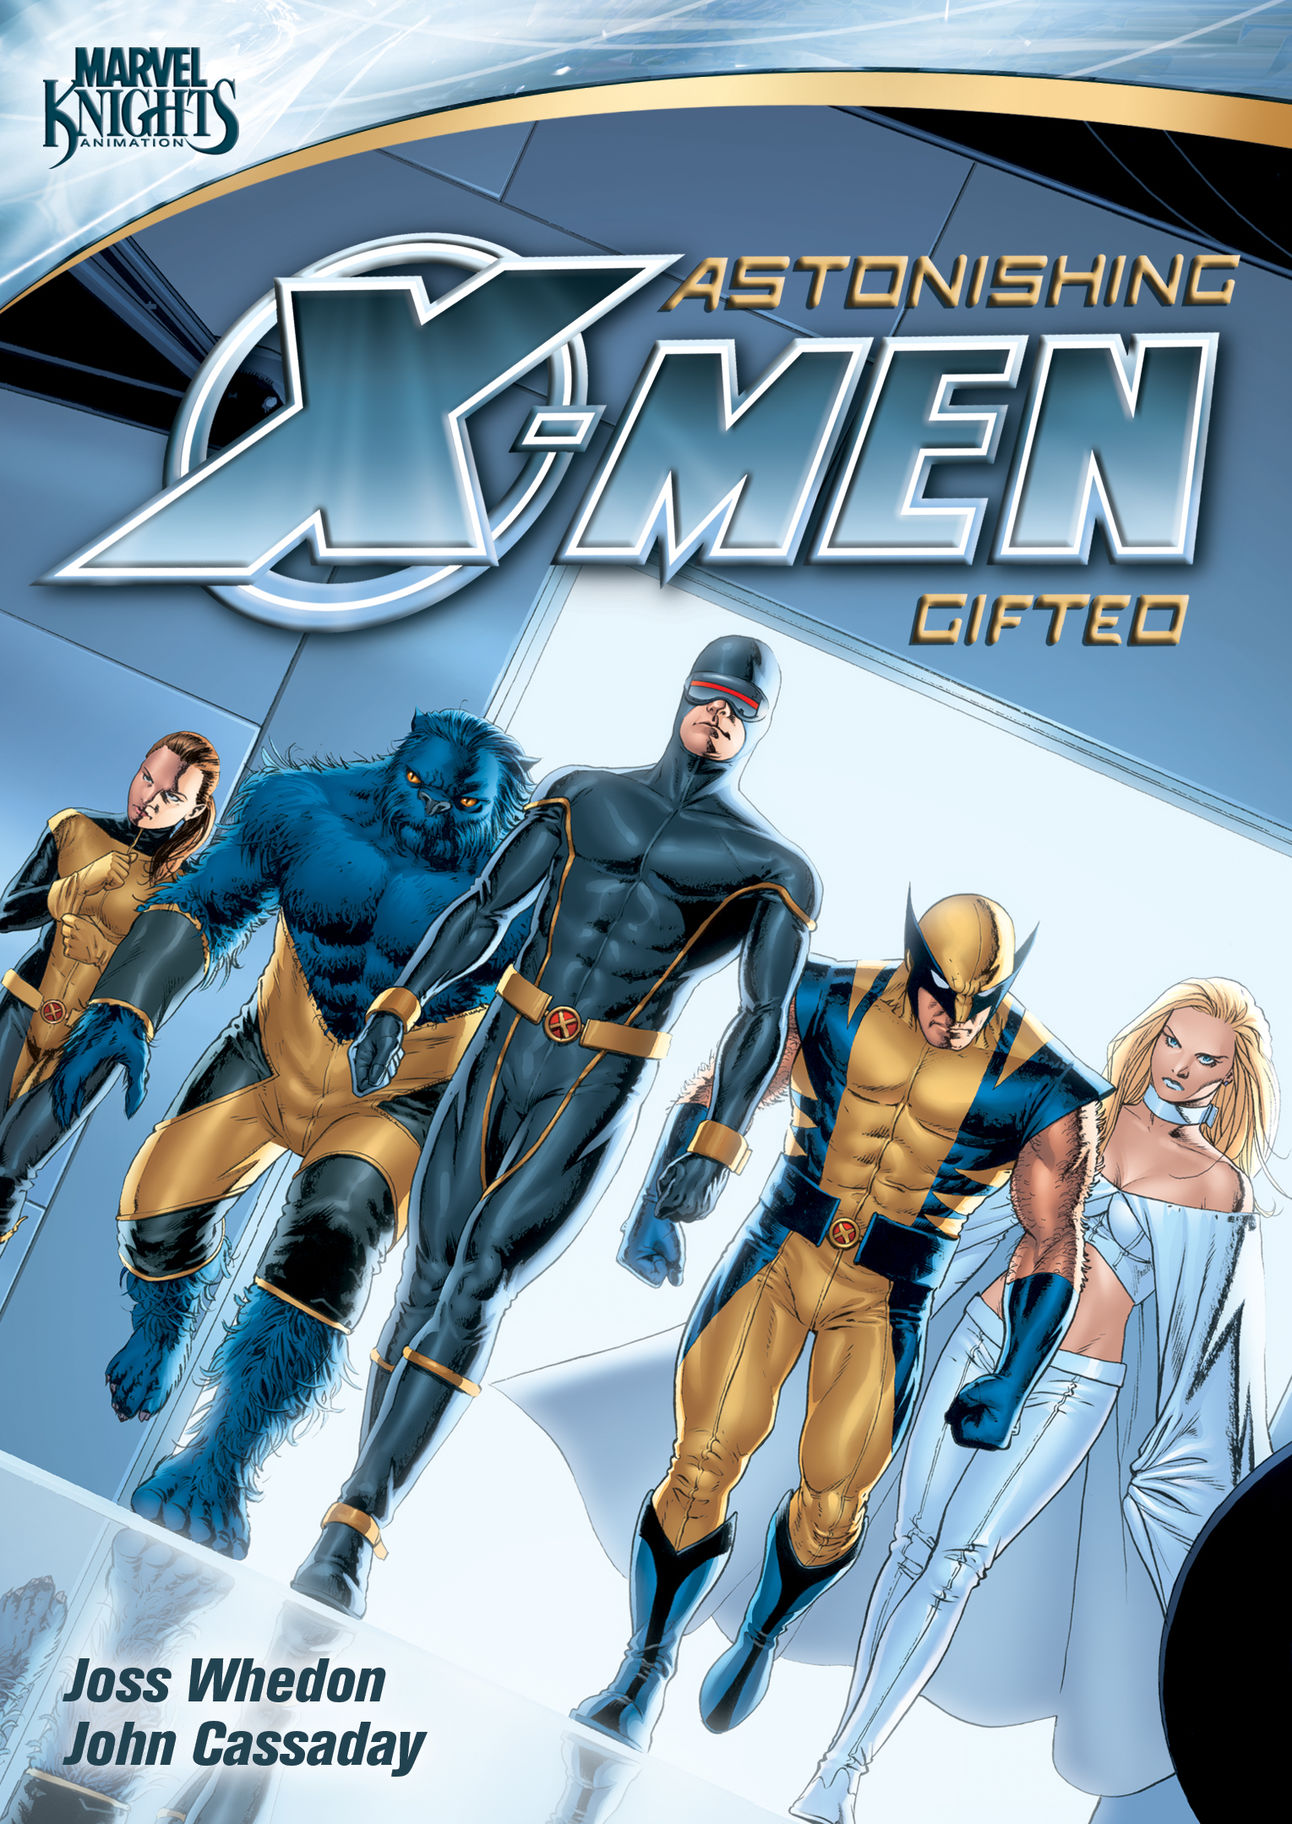 astonishing_x-men_gifted_dvd_cover.jpg